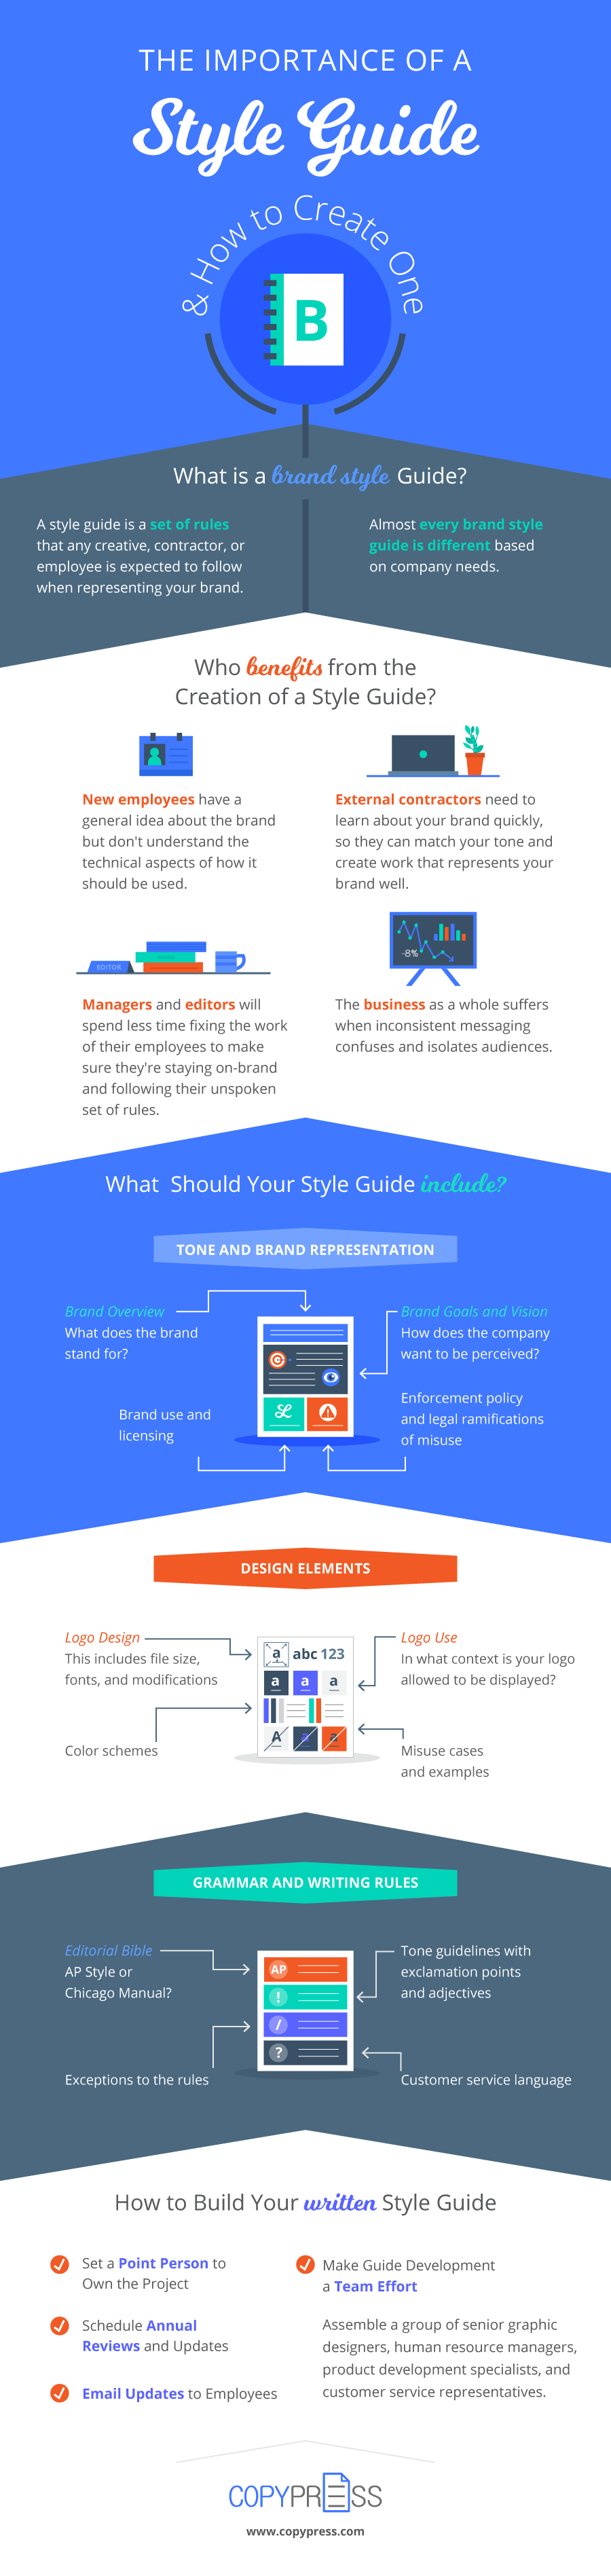 The Importance of a Style Guide for Branding [Infographic] | Social Media Today